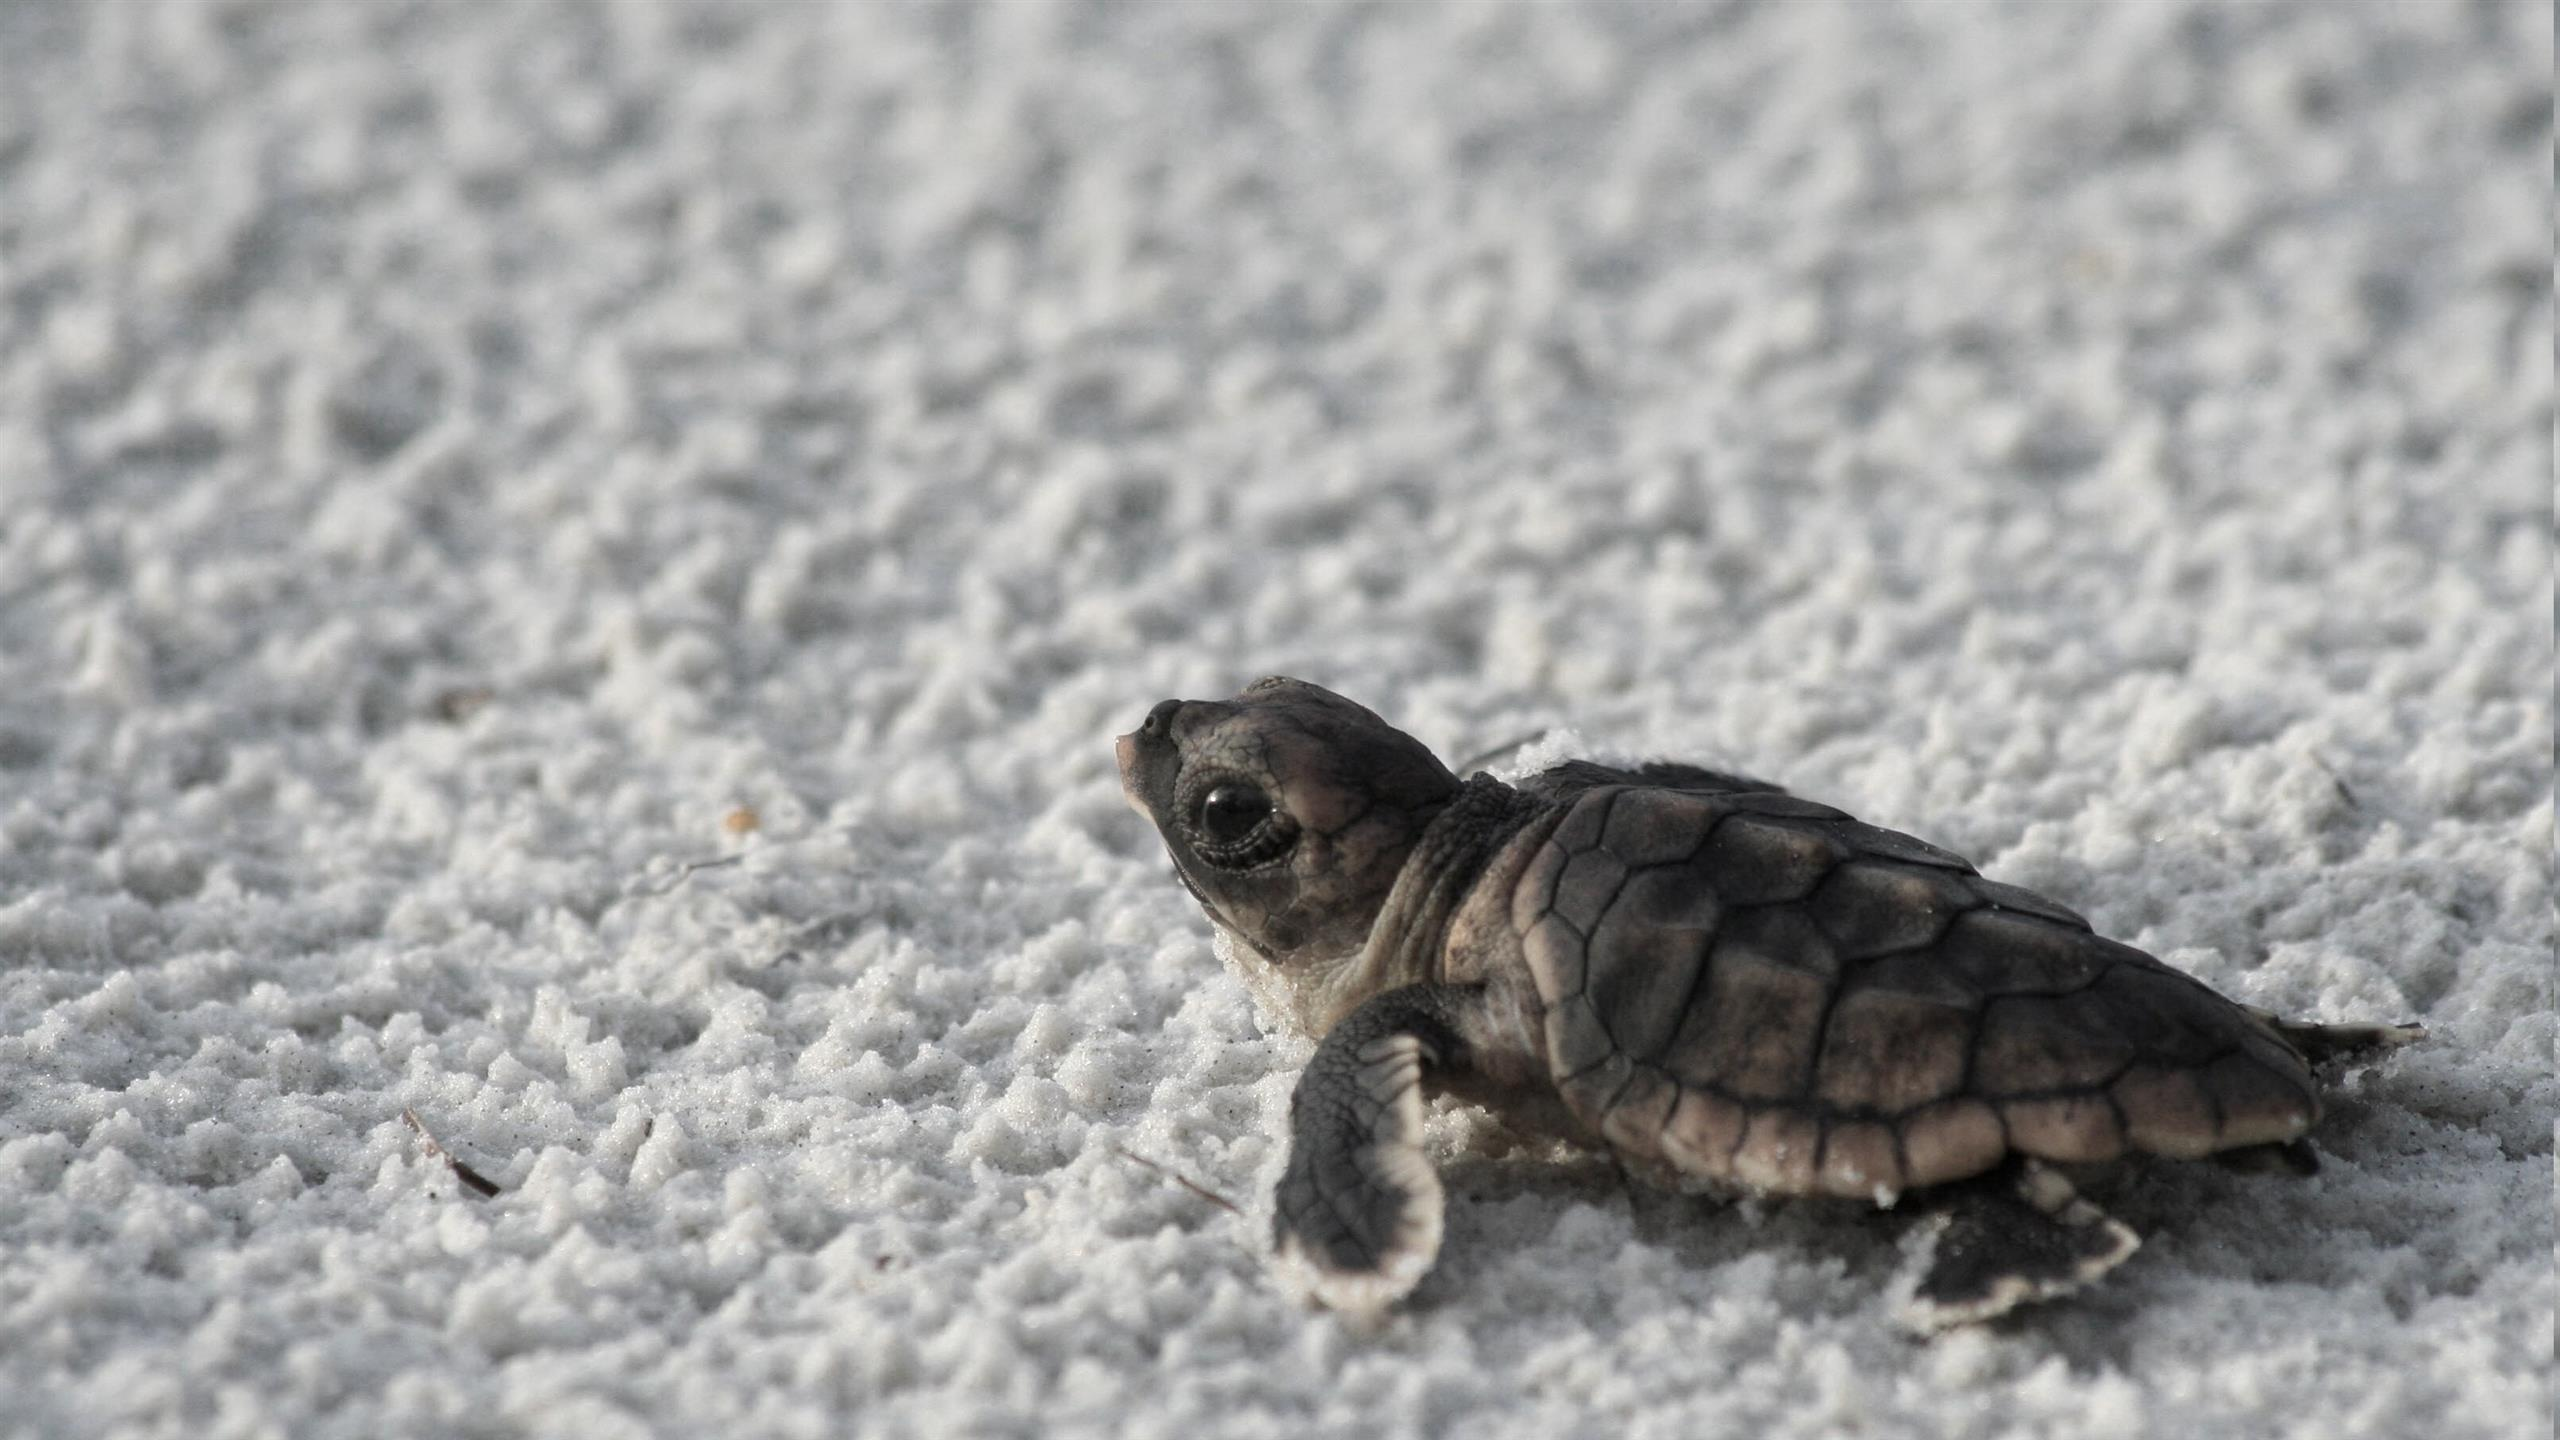 2560x1440 Baby Turtle on Beach